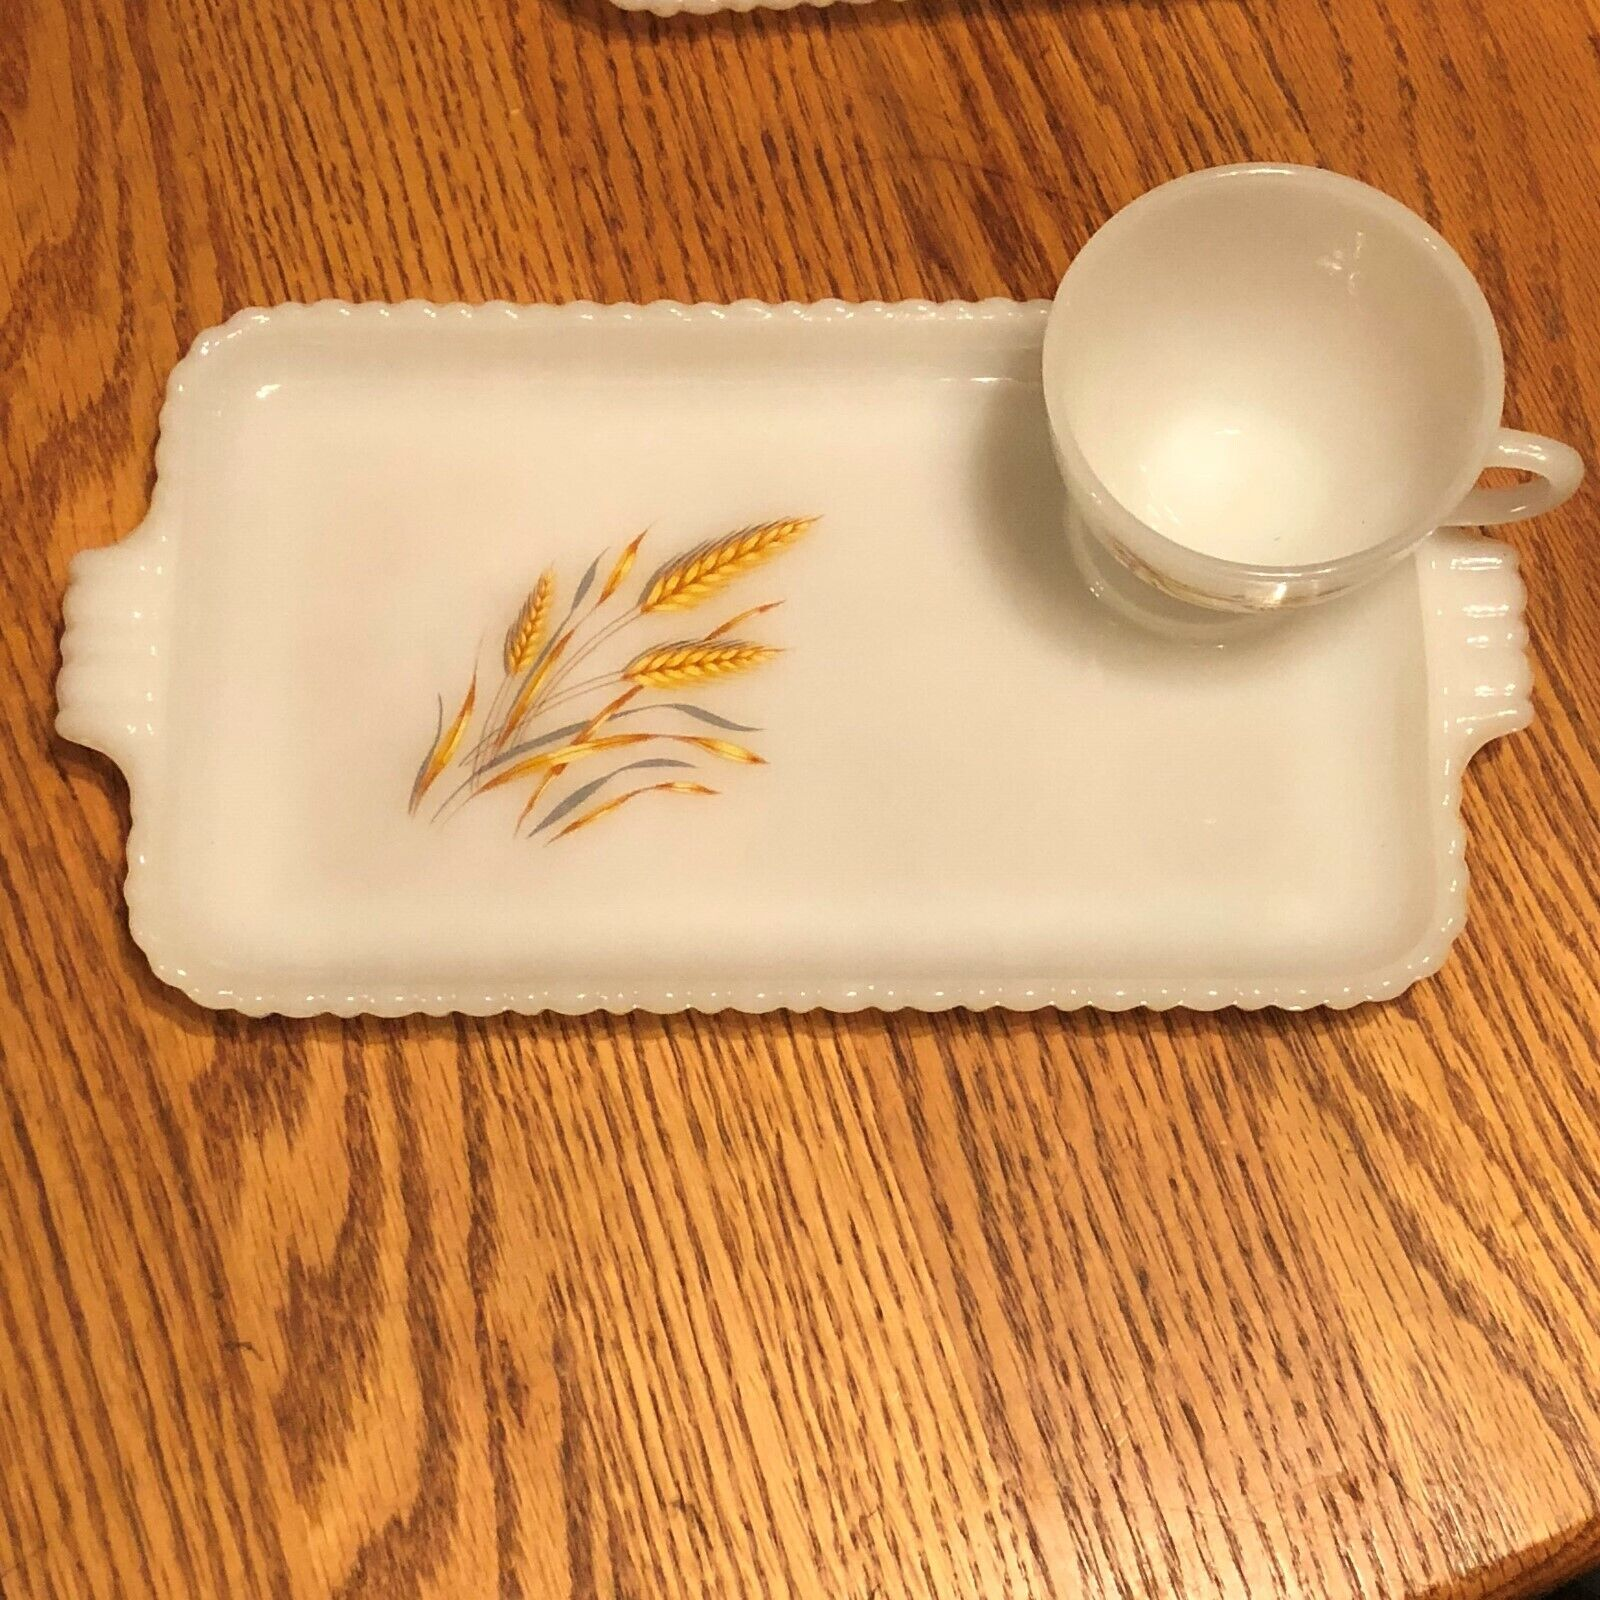 Set Of 4 10 X 6 Serving Trays W/ Small Tea Cup W/ Harvest Gold Wheat Pattern  - $18.99